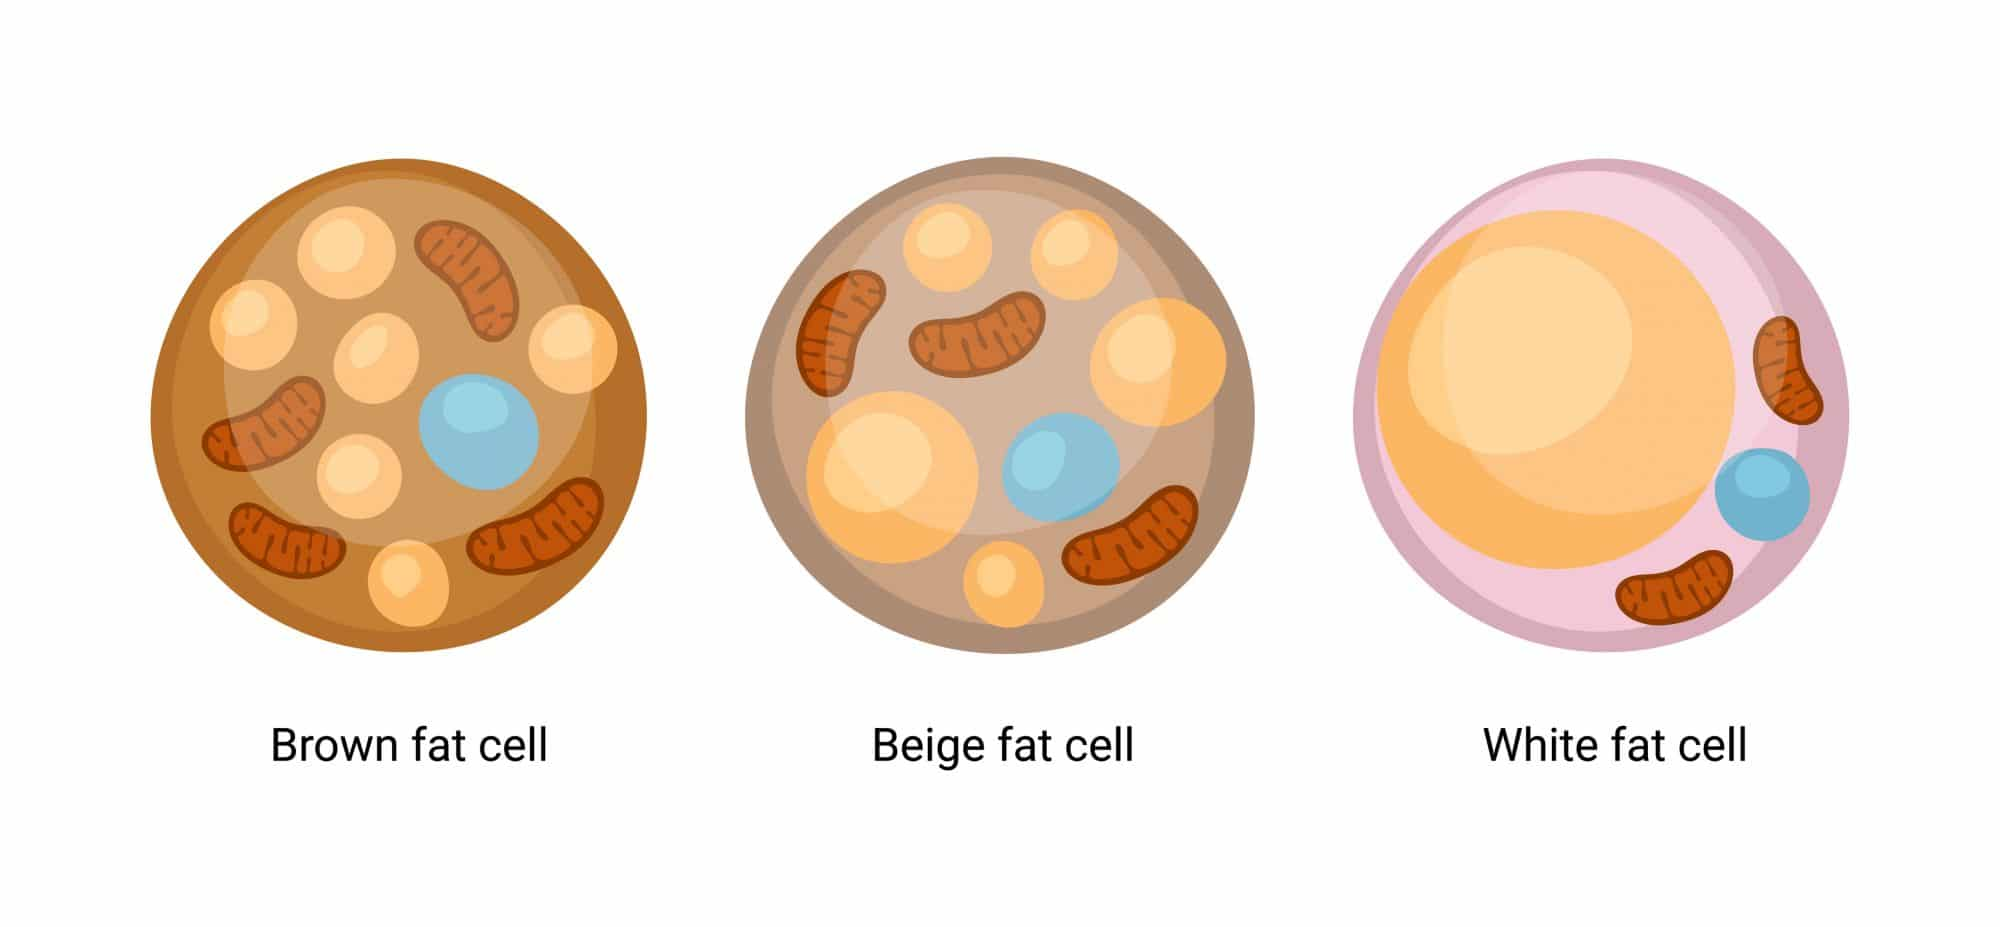 Brown fat cell - White fat cell - Beige fat cell